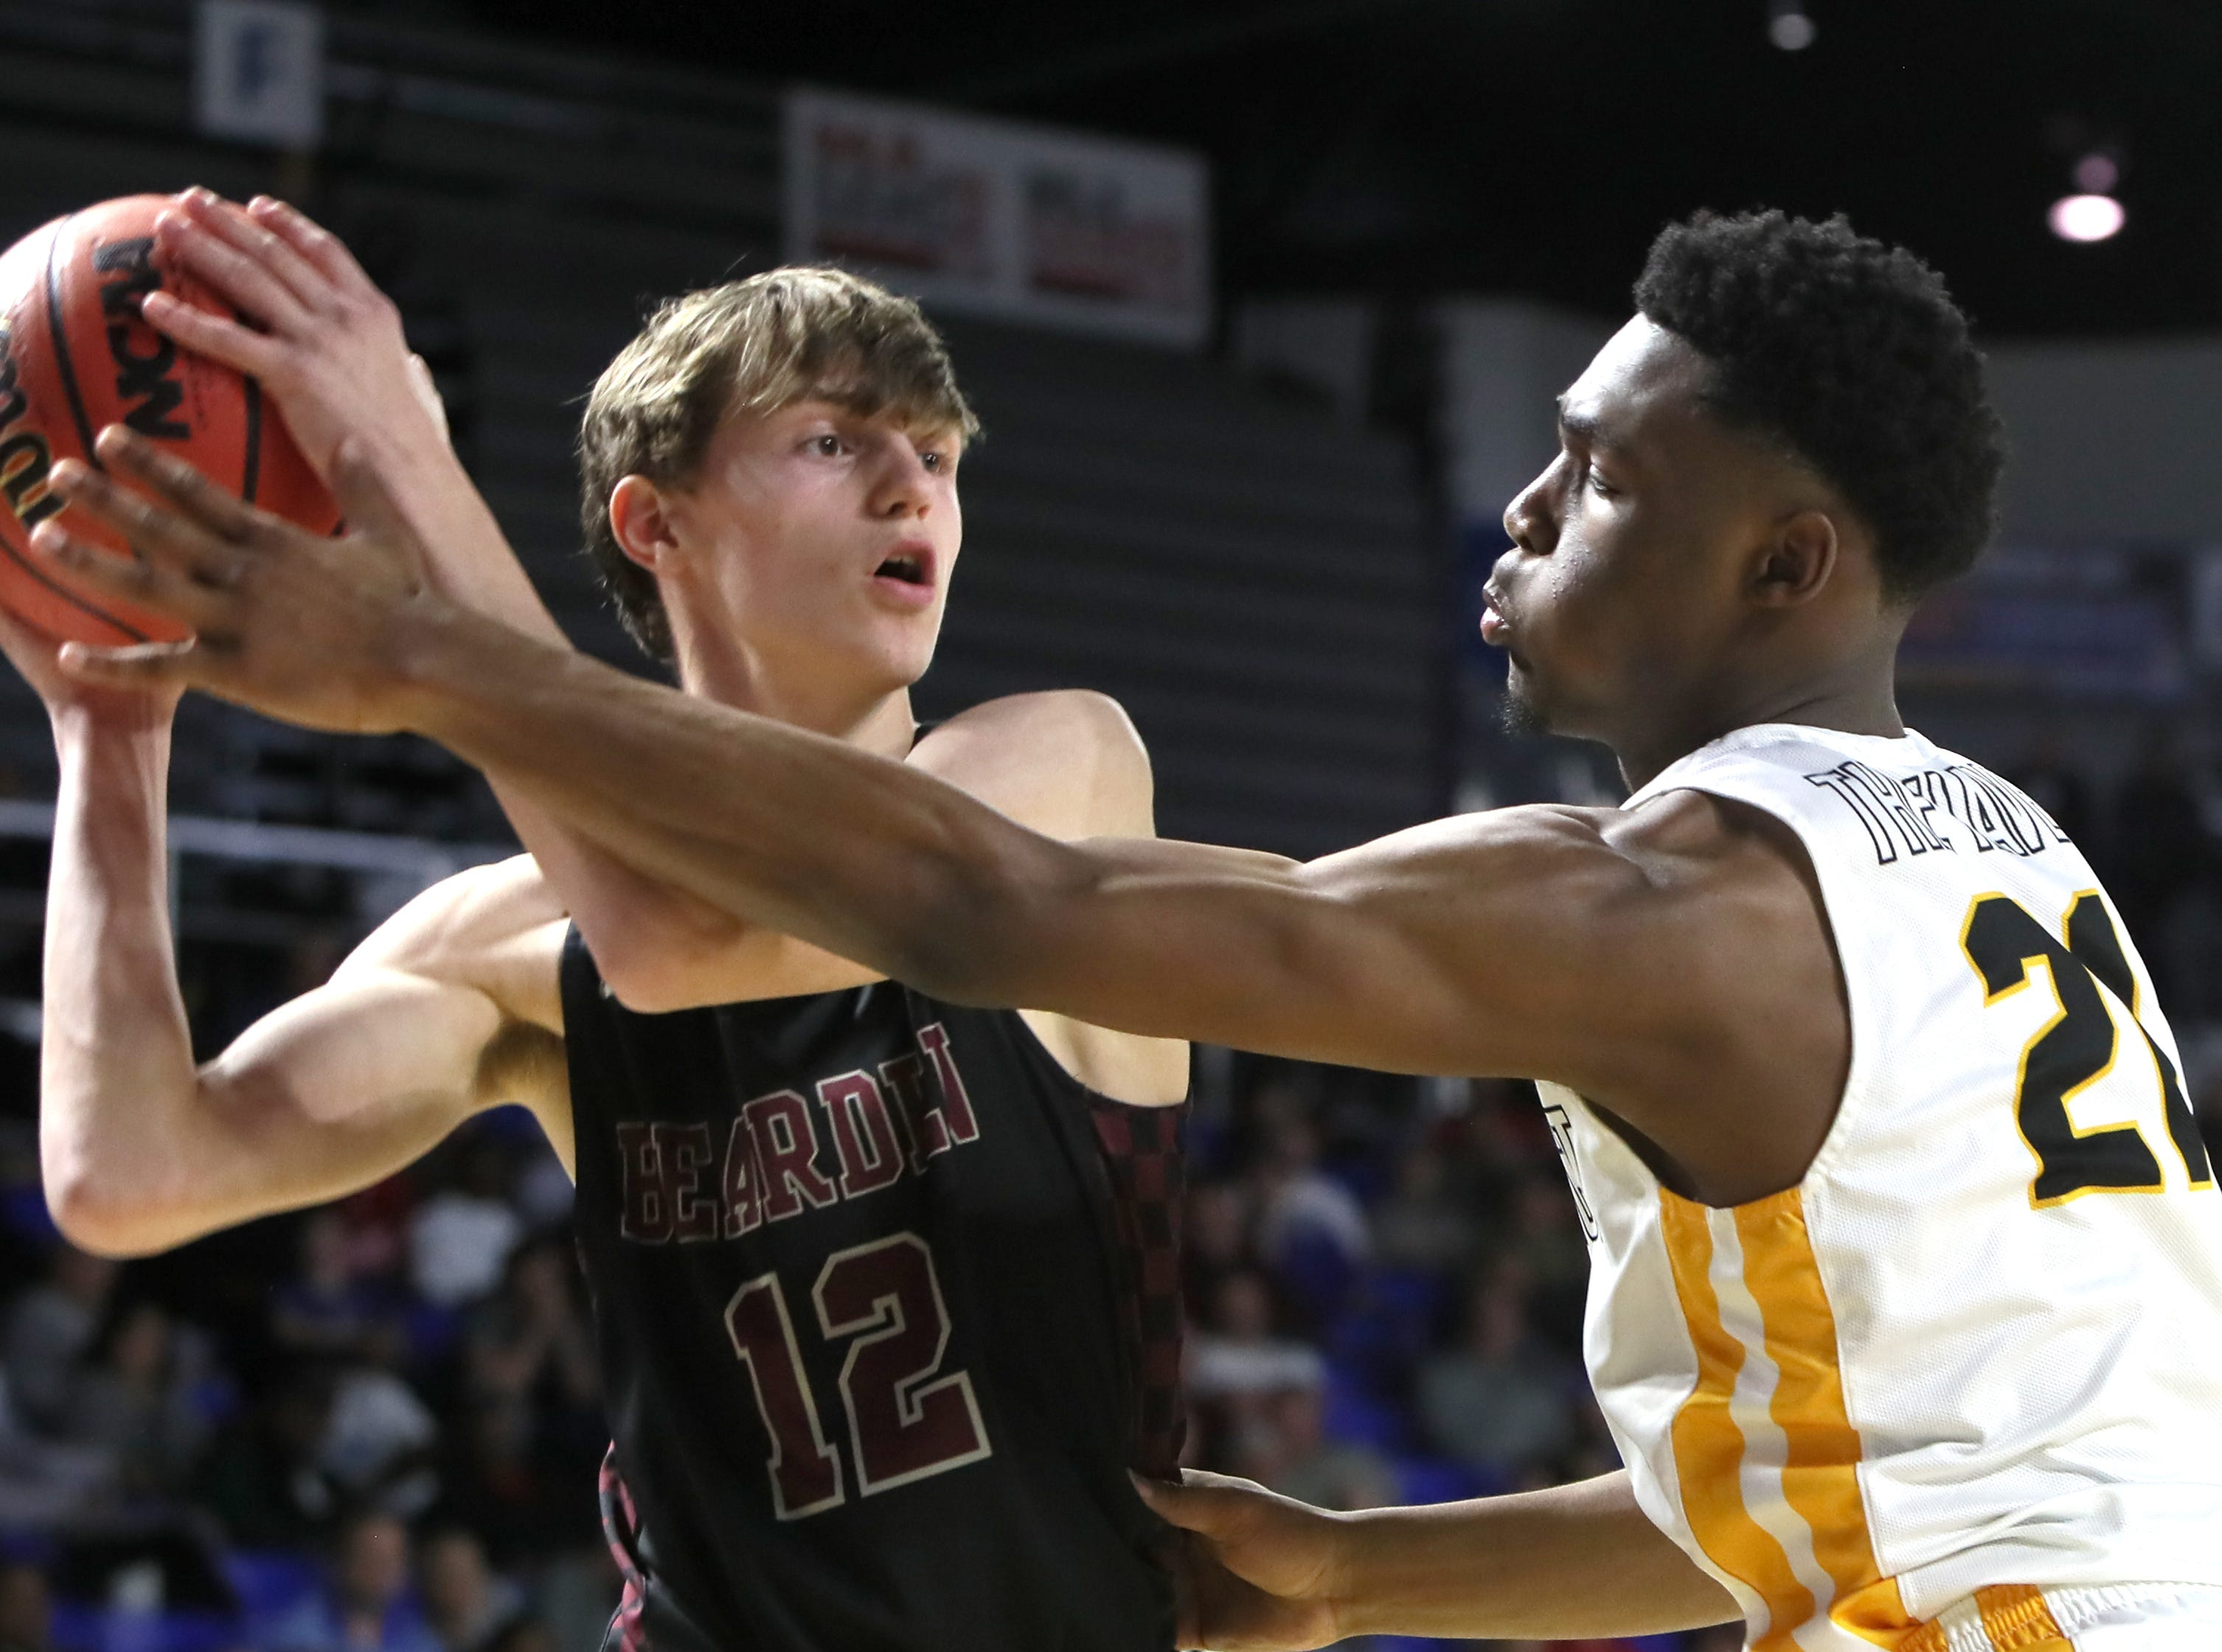 Whitehaven's Devine Owens defends Bearden's Hayden Treadwell during the Class AAA boys basketball state semifinal at the Murphy Center in Murfreesboro, Tenn. on Thursday, March 14, 2019.